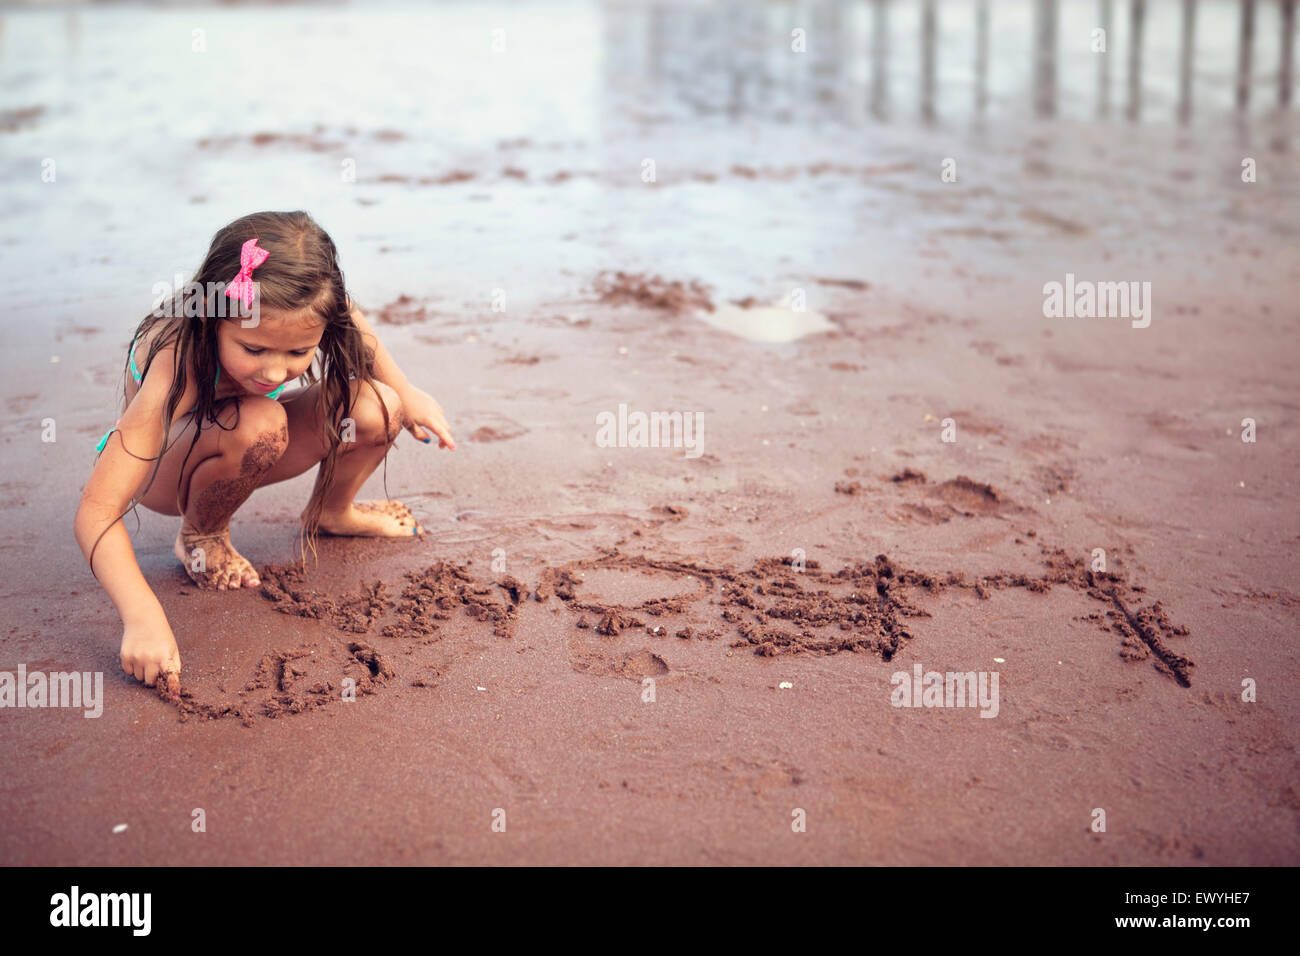 Girl writing in the sand - Stock Image